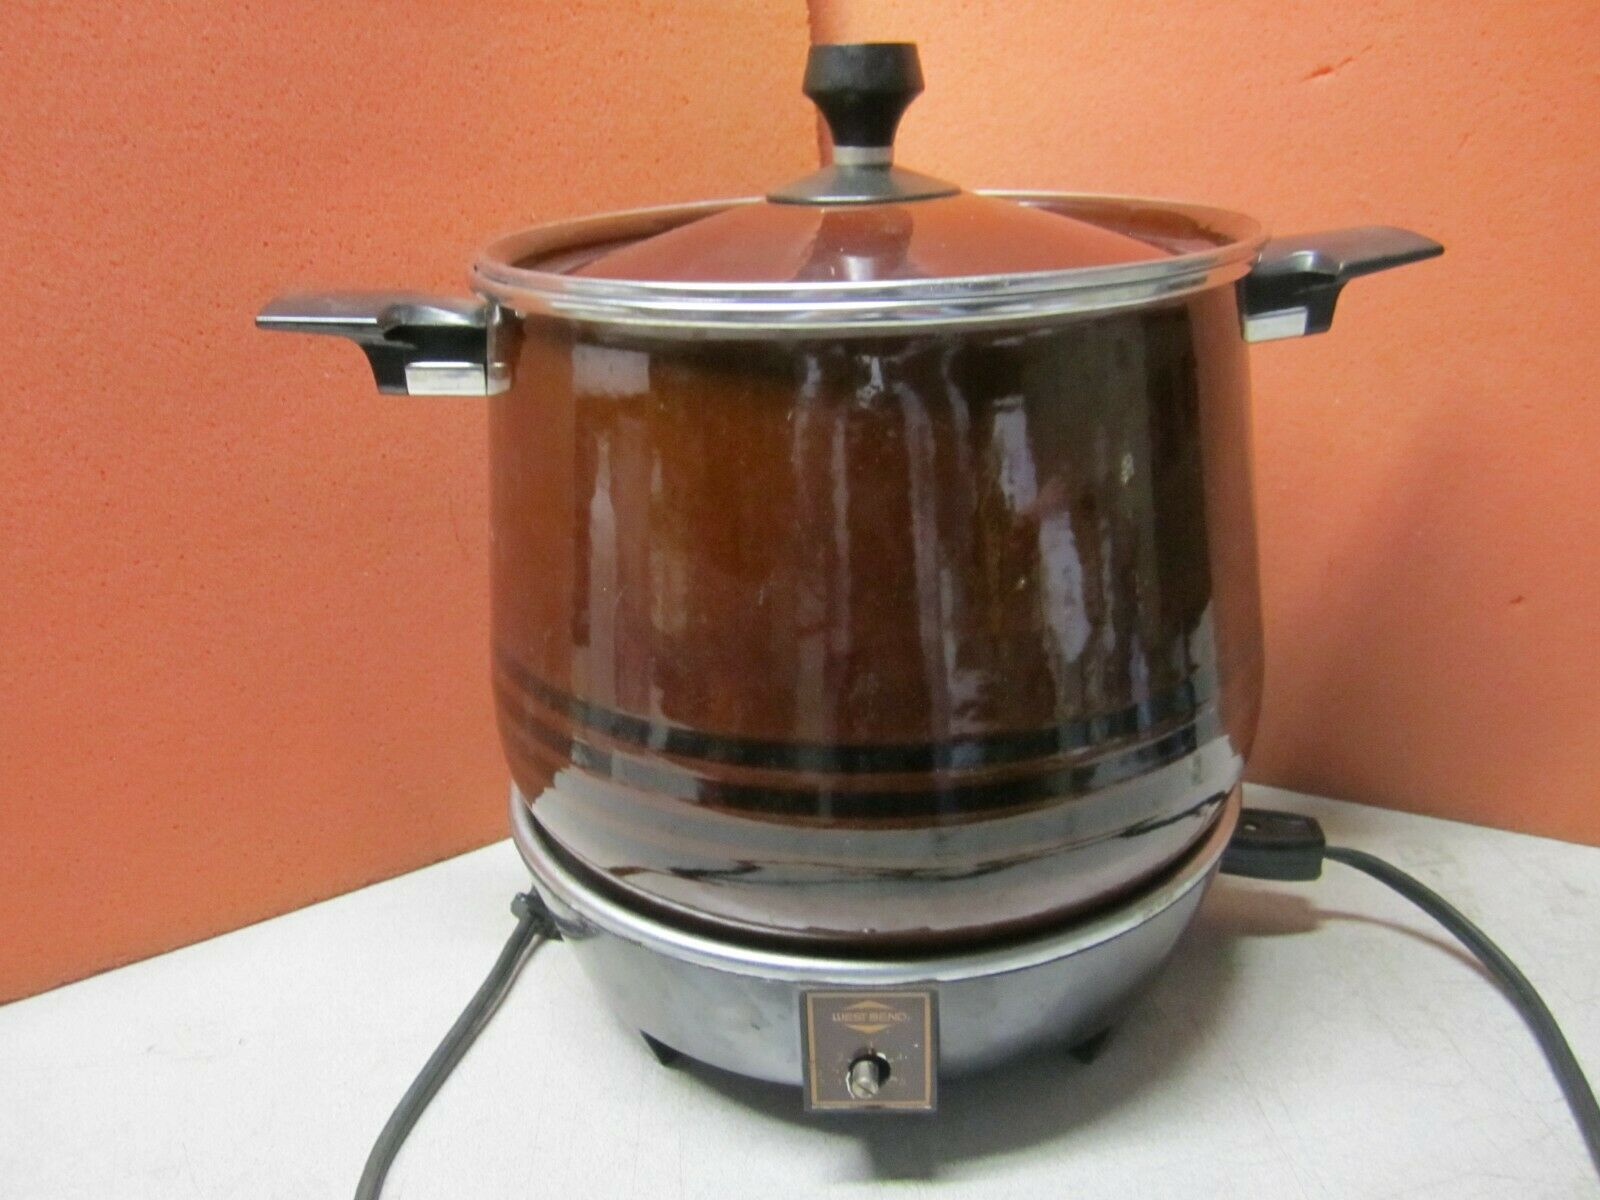 Vintage West Bend Lazy Giorno Fornello Lento, 200 Watt, 6 Quart , Manca Pomello